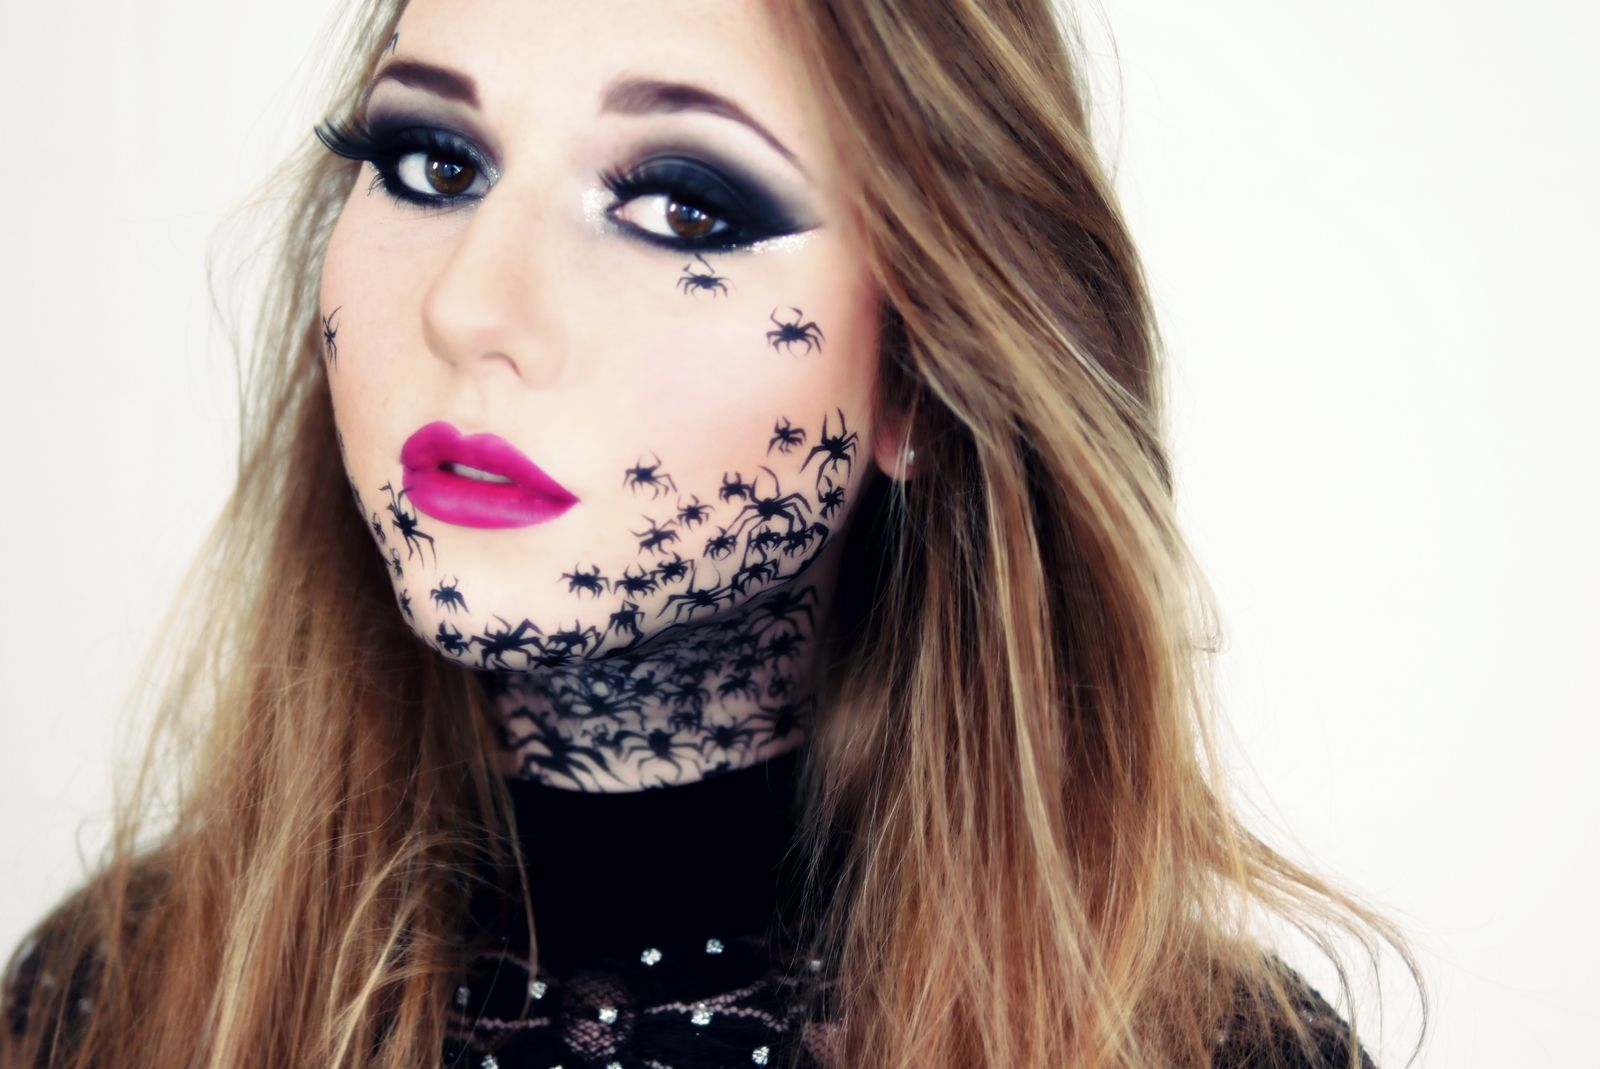 spider make up few sparks halloween carnival make up spider woman izabell pinterest. Black Bedroom Furniture Sets. Home Design Ideas